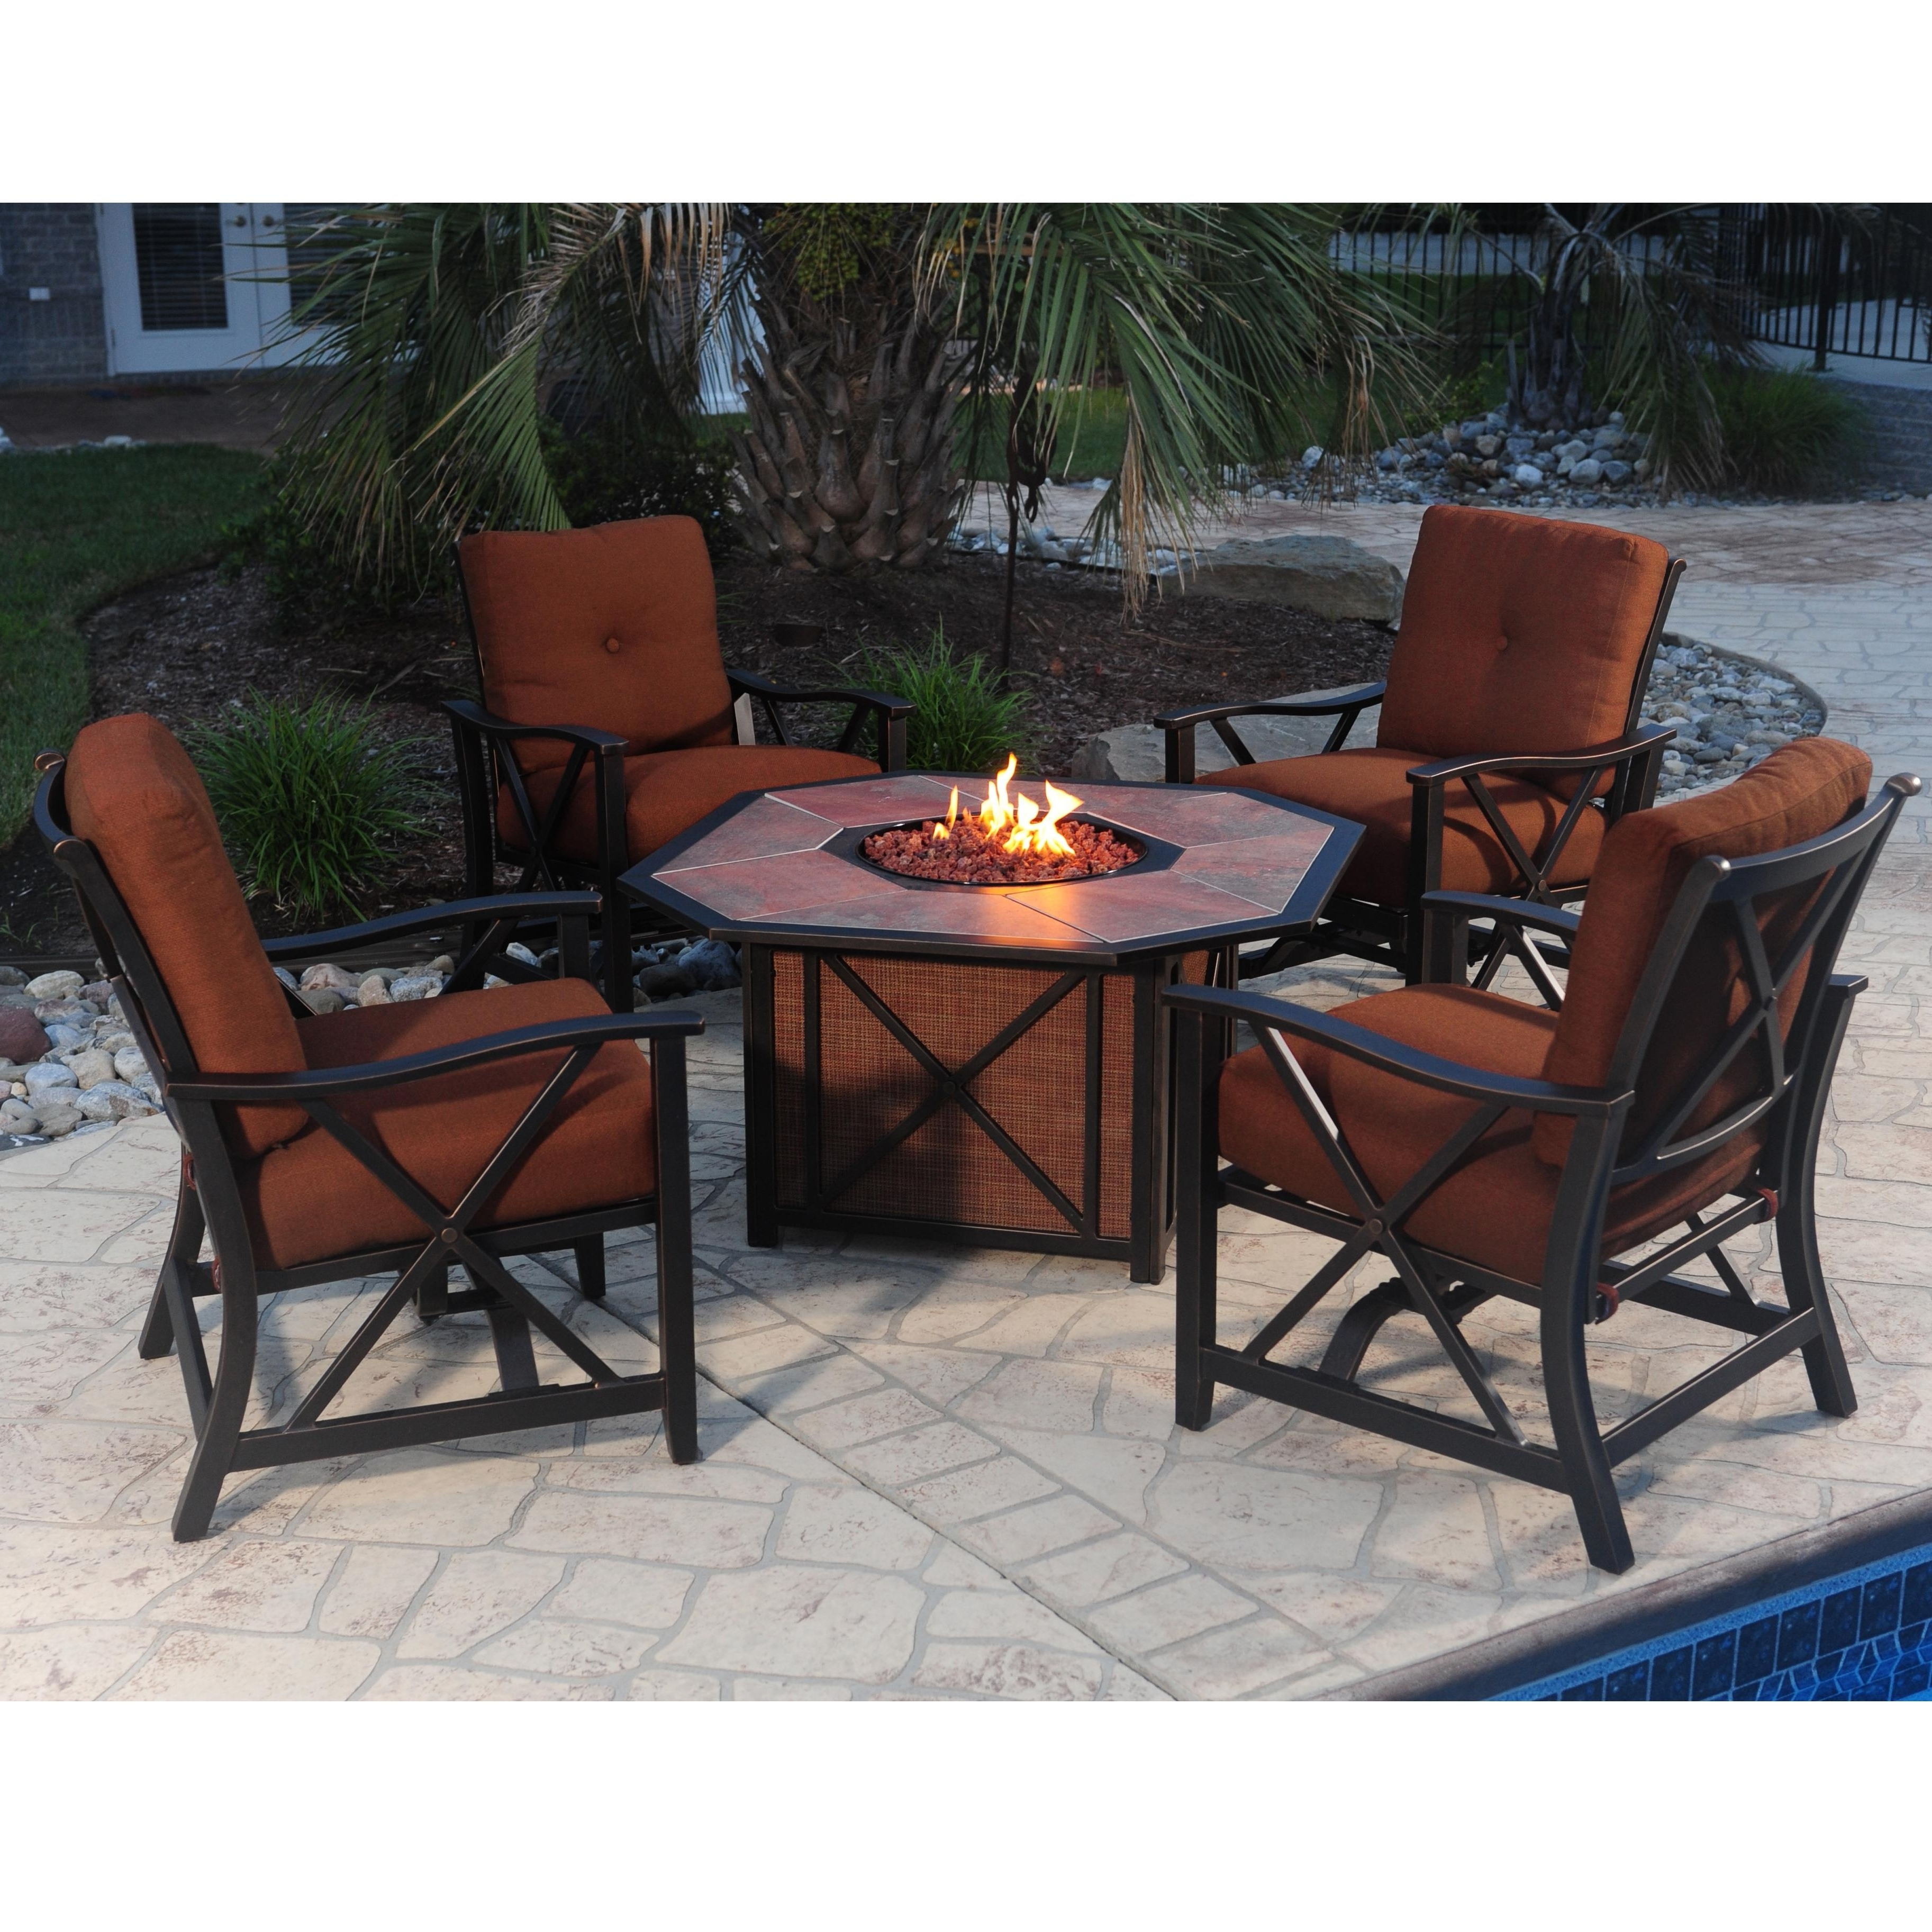 Most Recently Released Patio Conversation Sets With Fire Table Pertaining To Agio Haywood 5 Piece Outdoor Fire Pit Set With Aluminum Stationary (View 5 of 15)